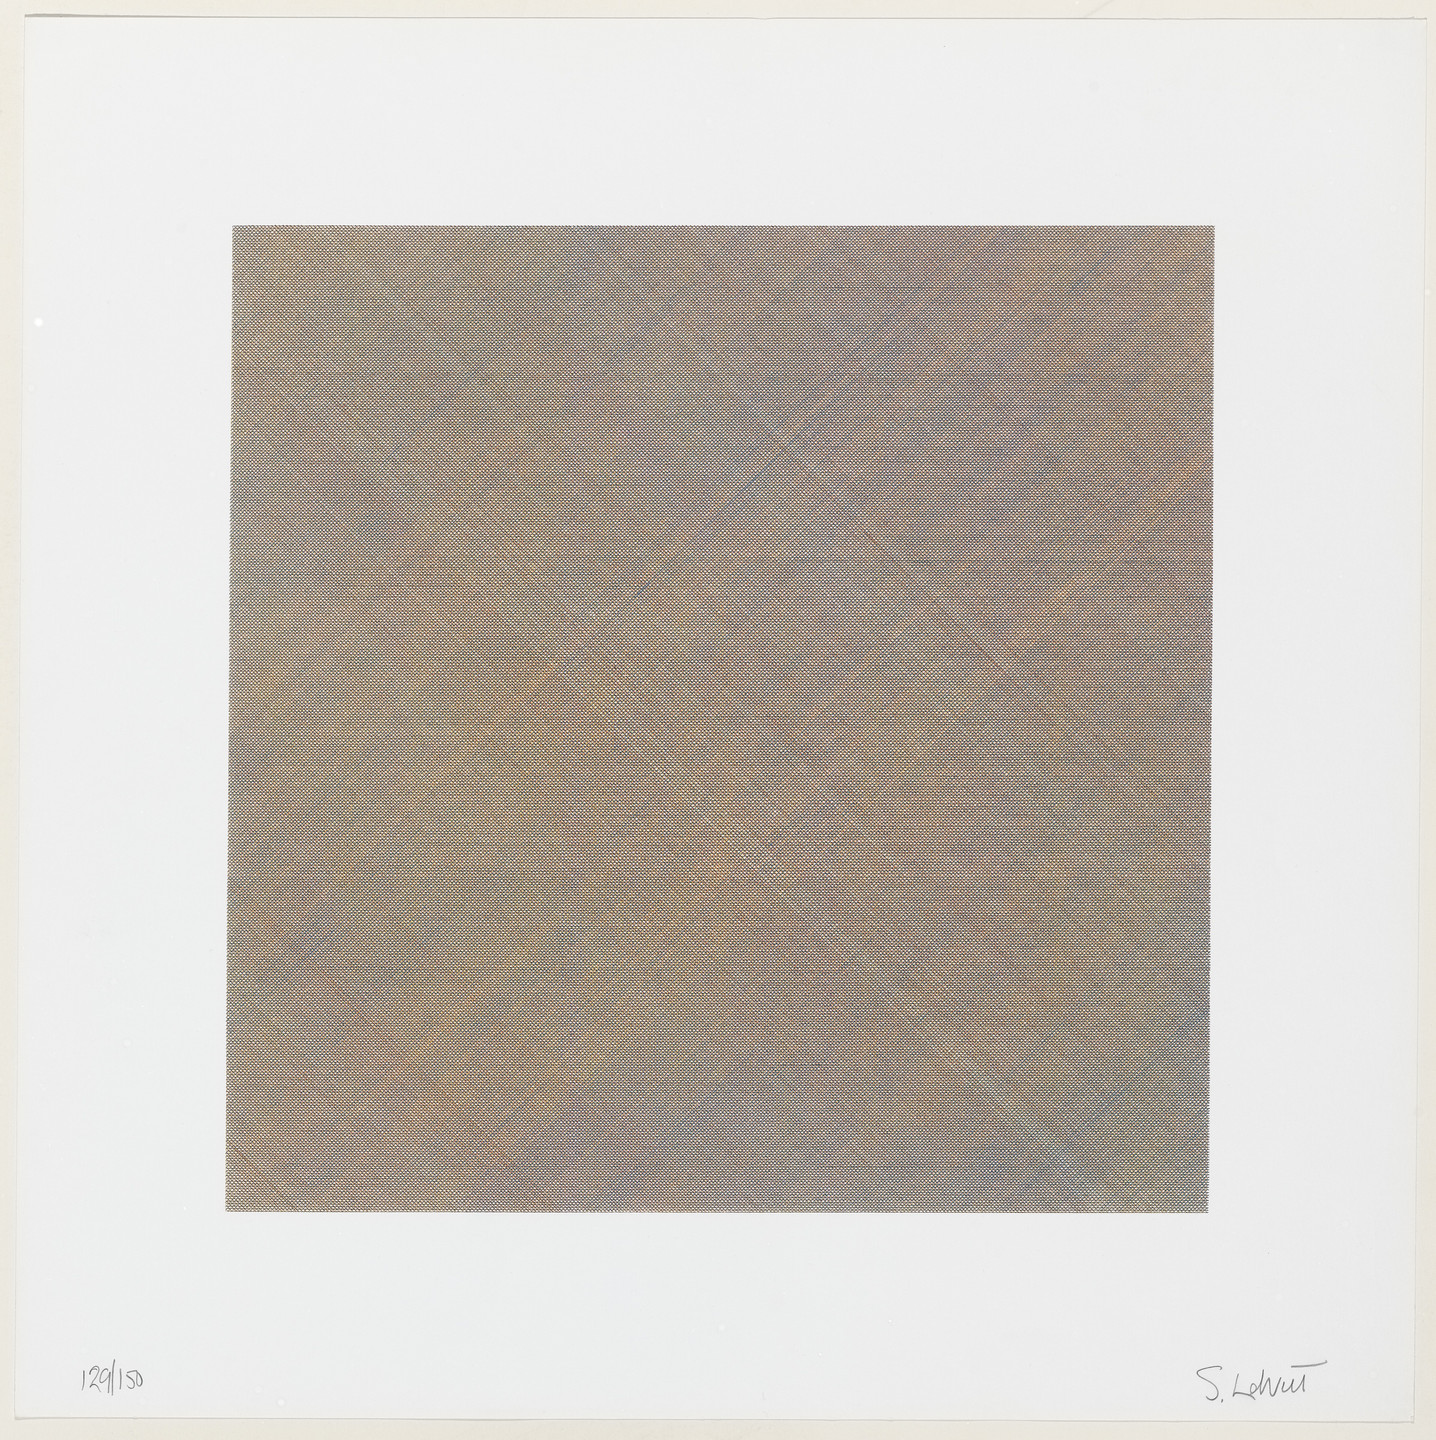 Sol LeWitt. Untitled from Composite Series. 1970